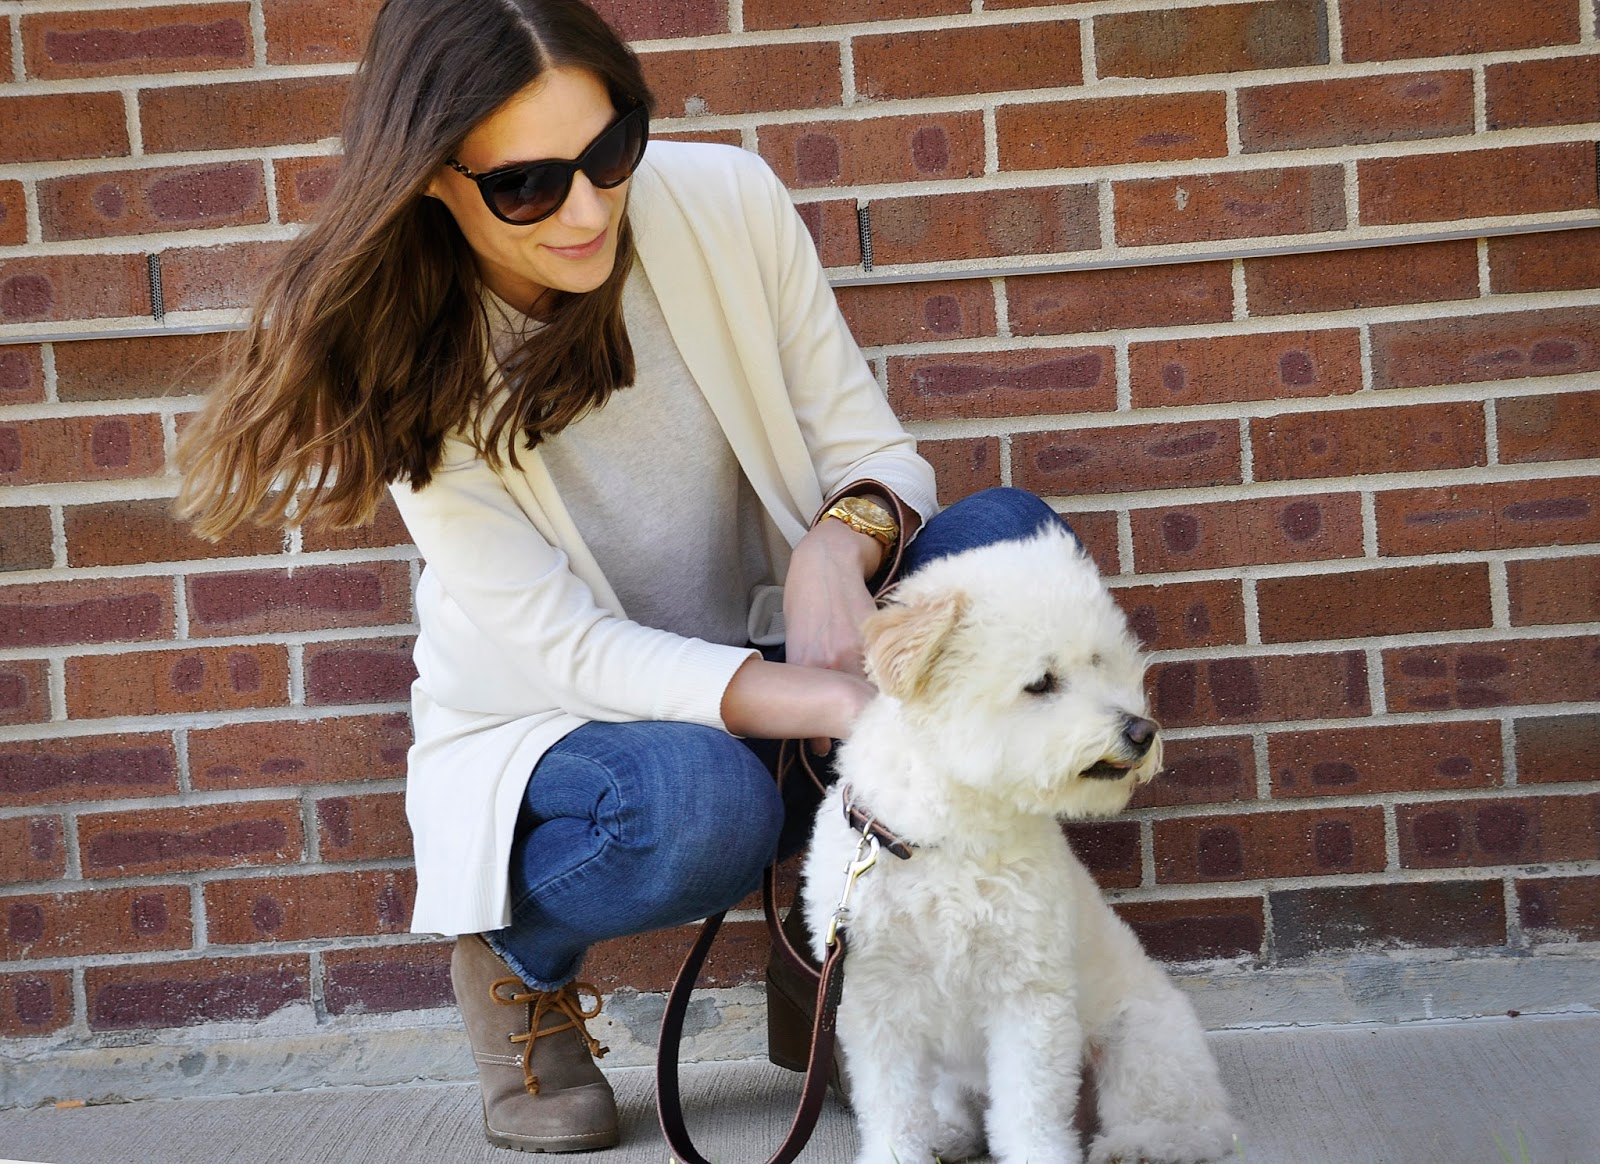 Sperry wedge ankle booties and a Bichon Frise